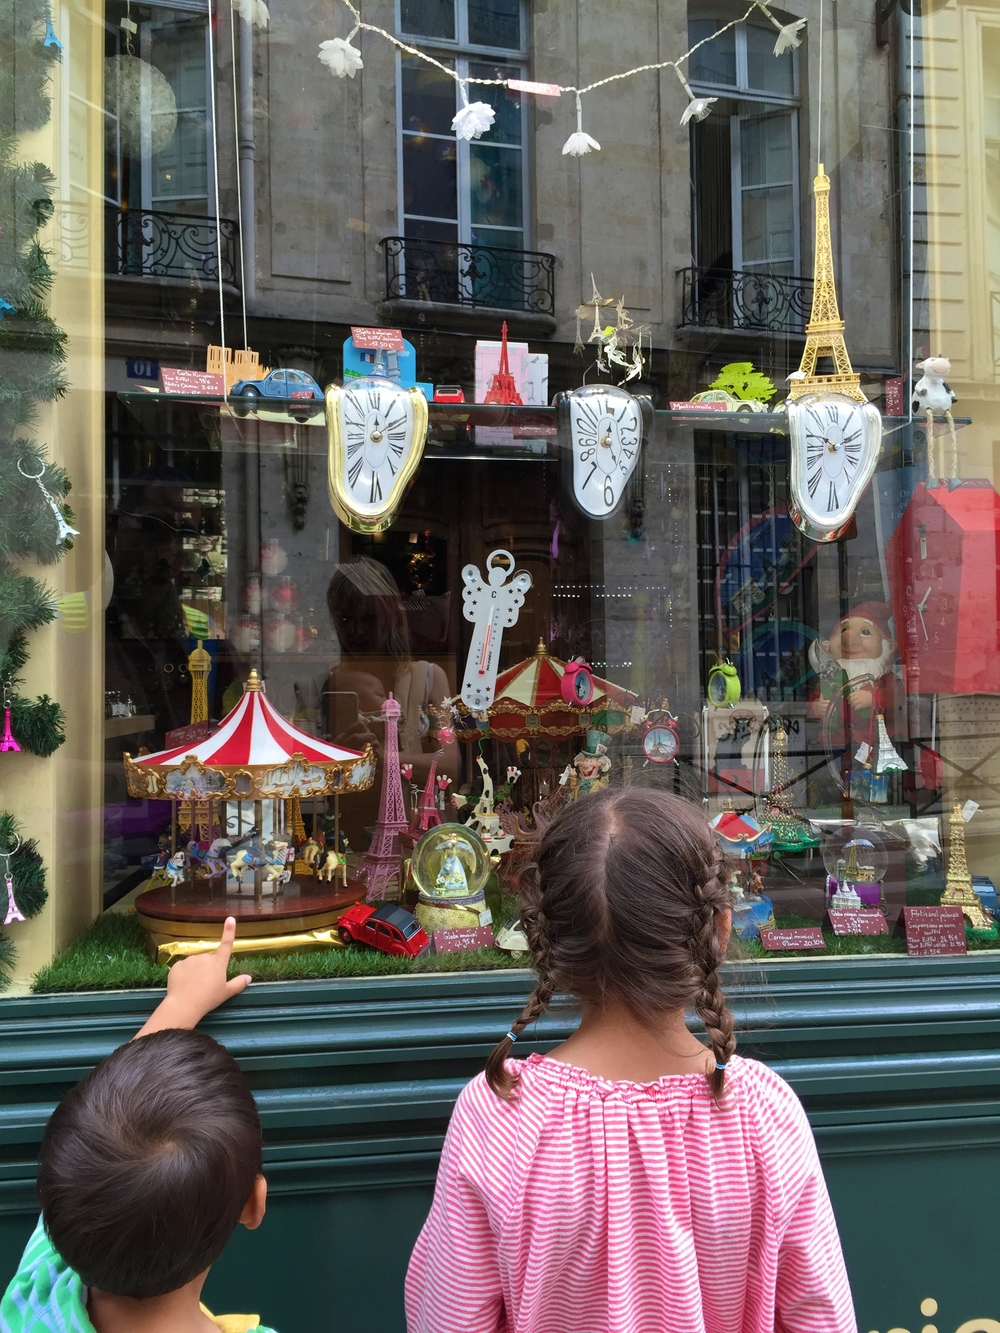 My children admiring the window displays in Paris